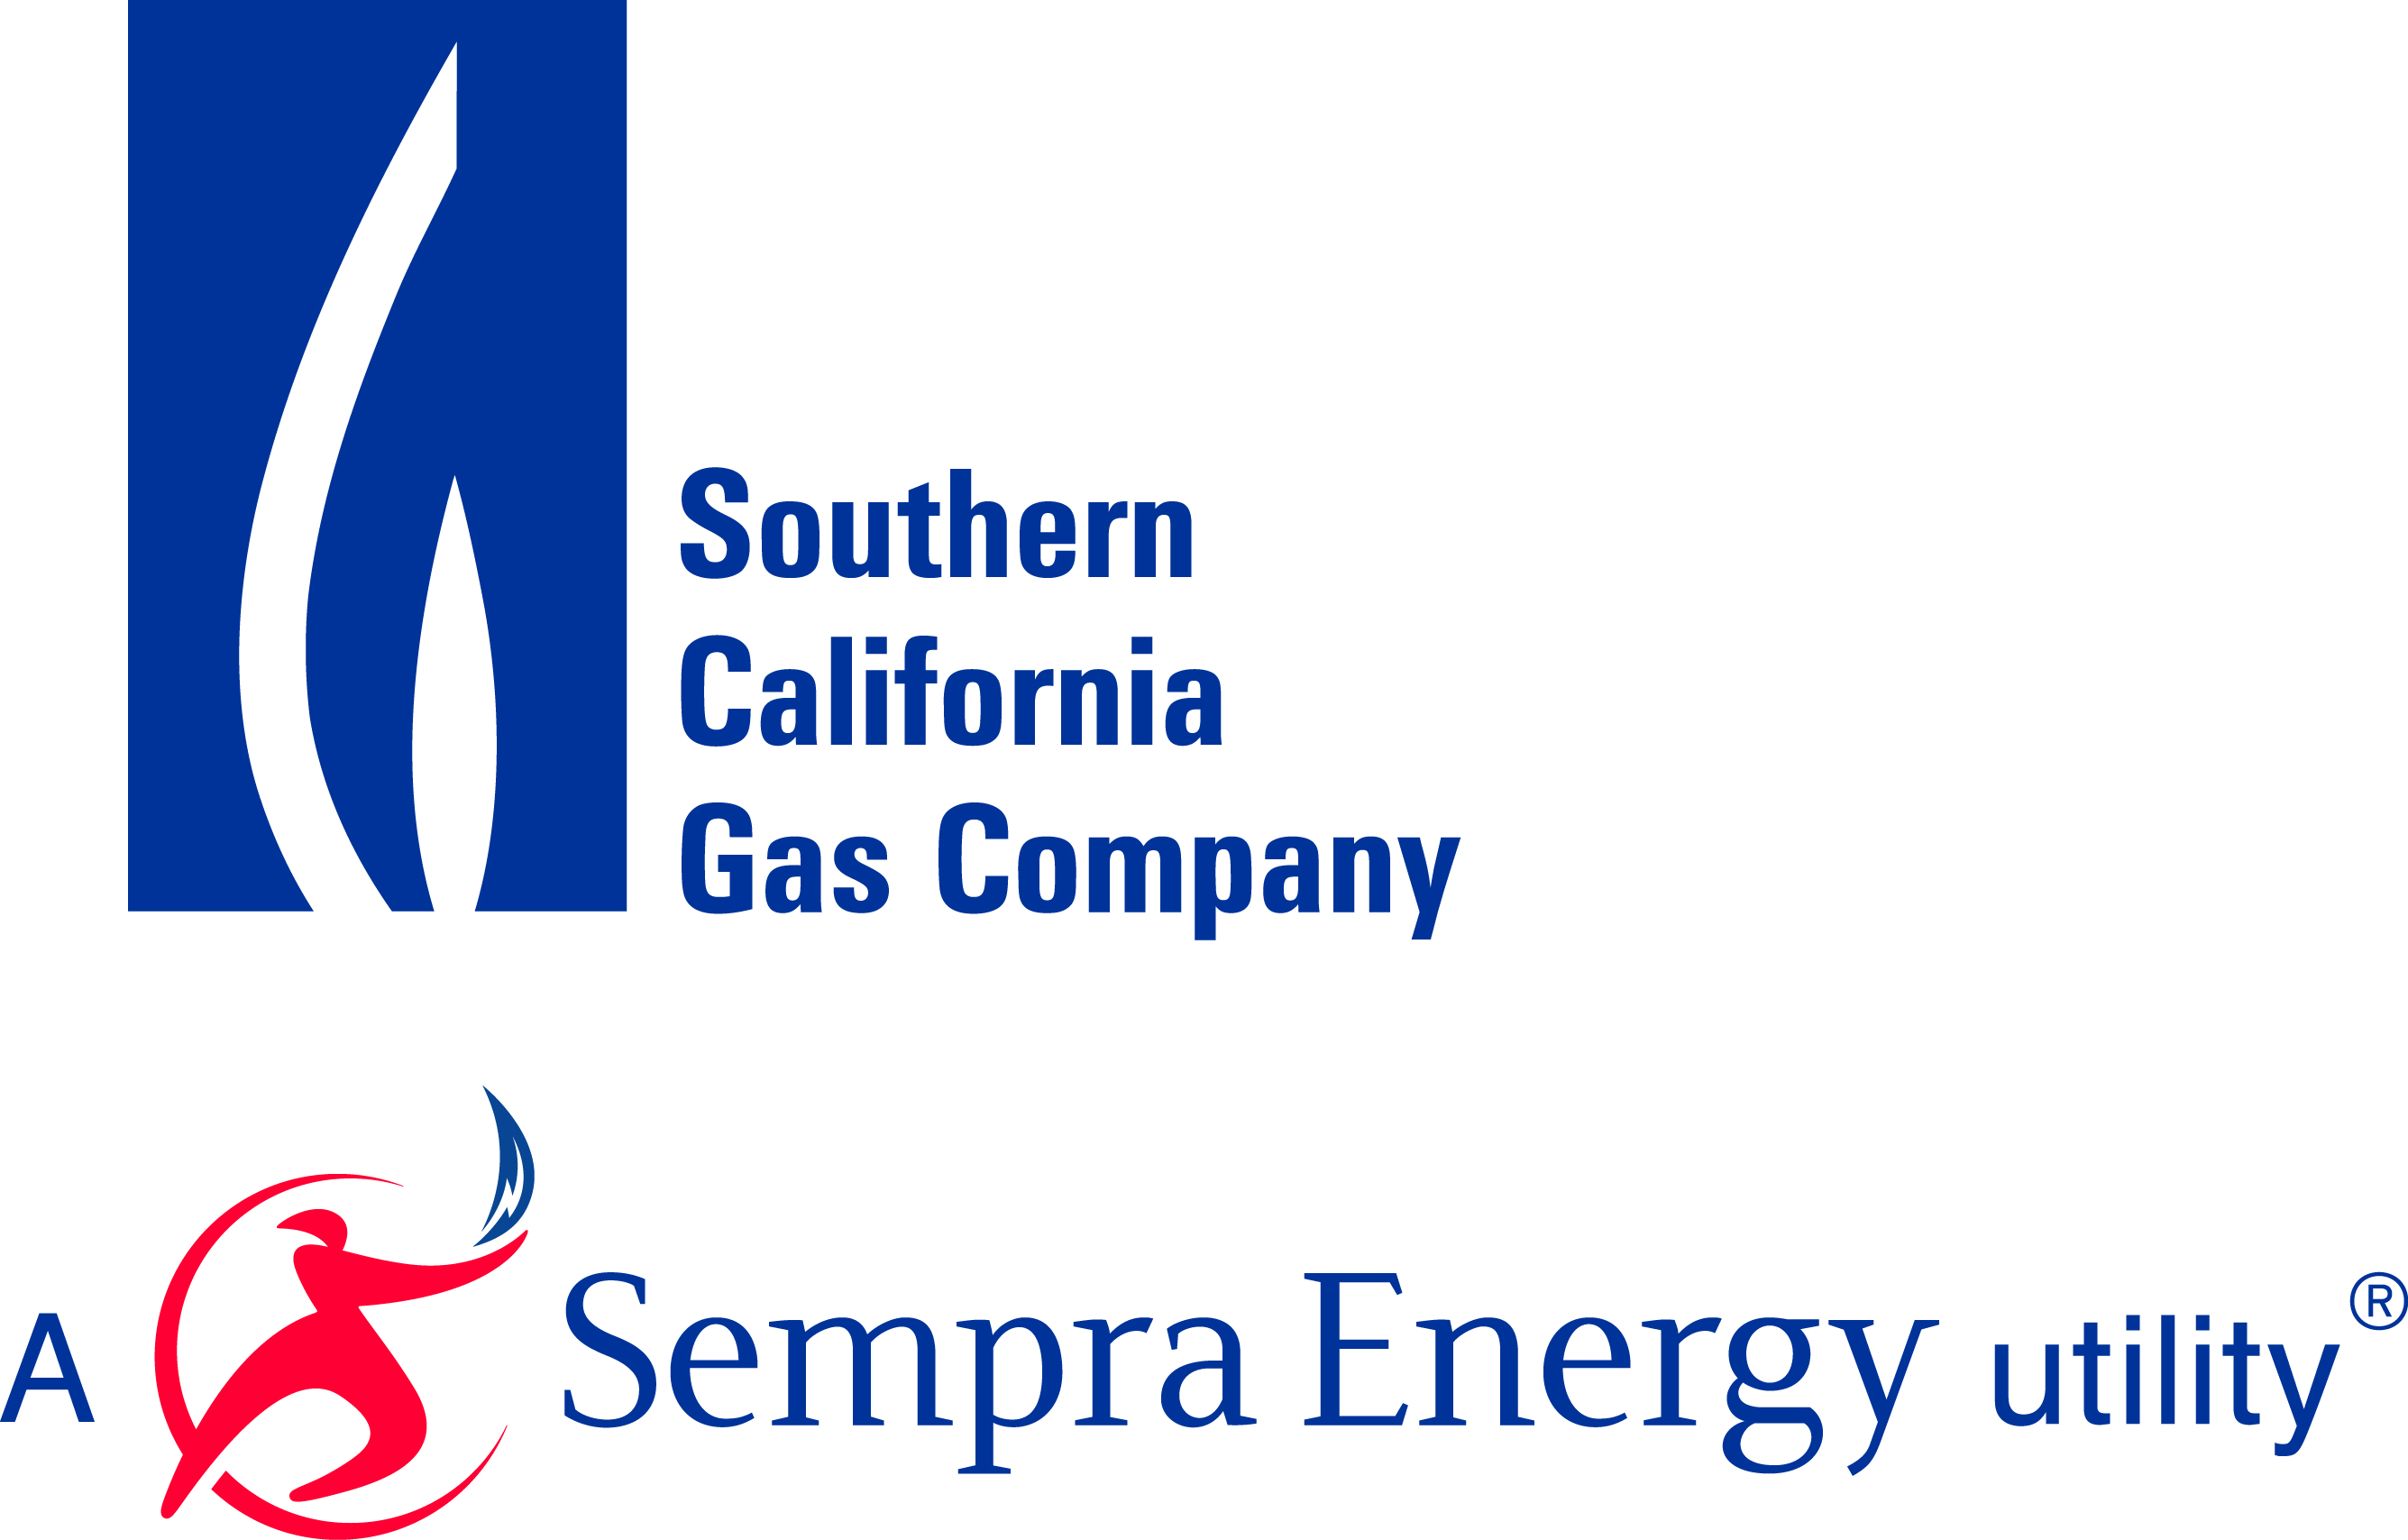 Southern California Gas